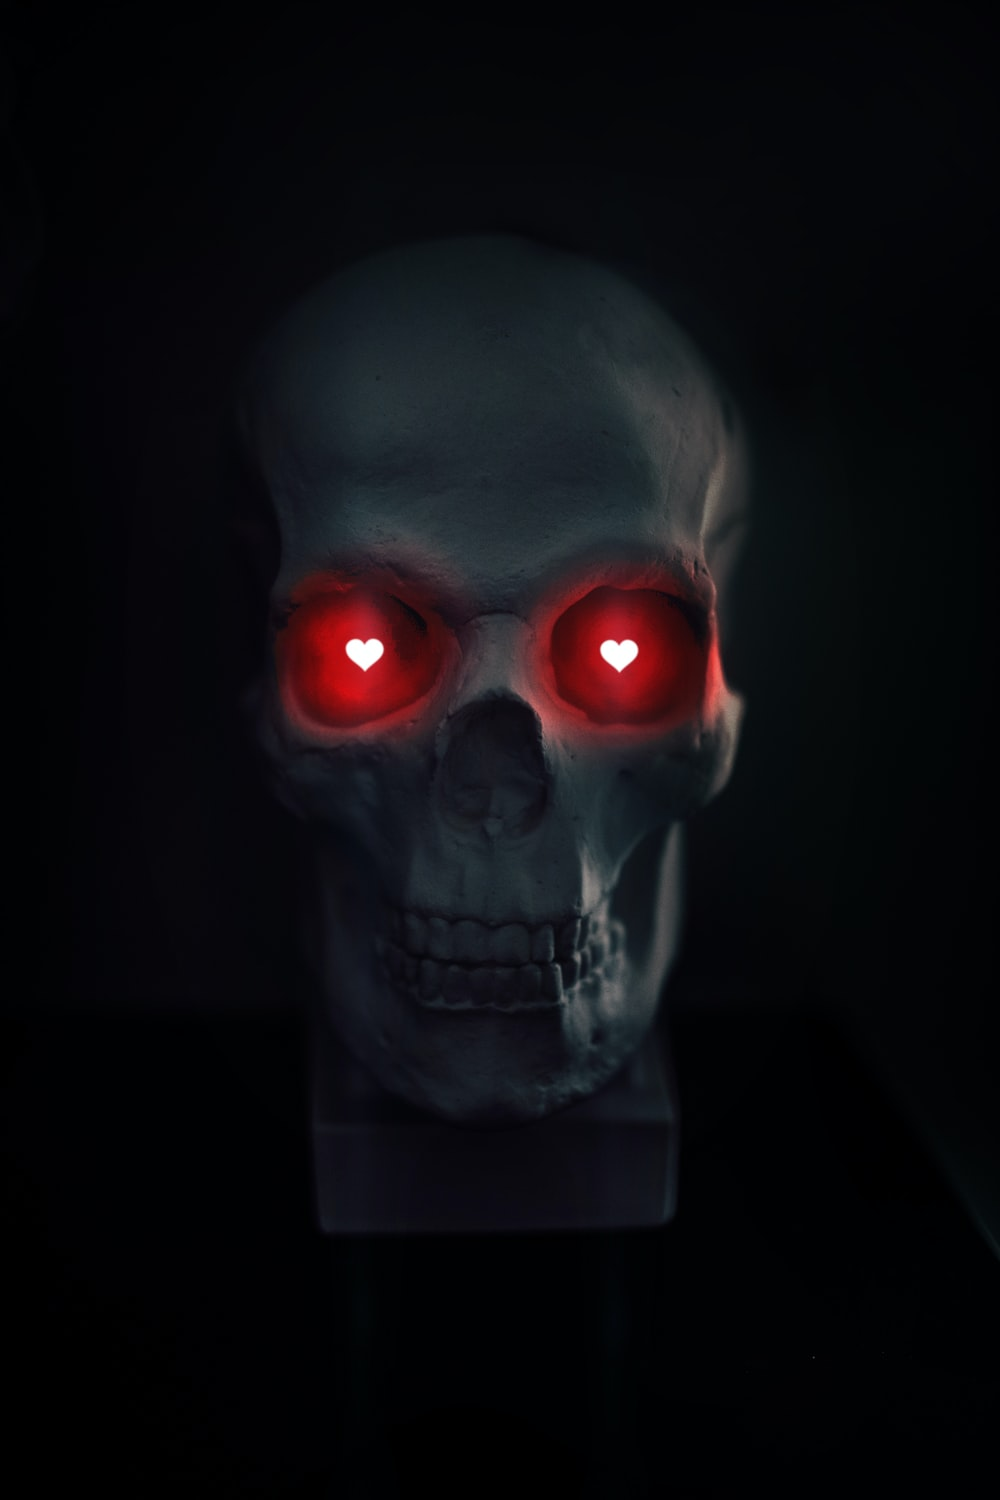 gray skull with red eyes